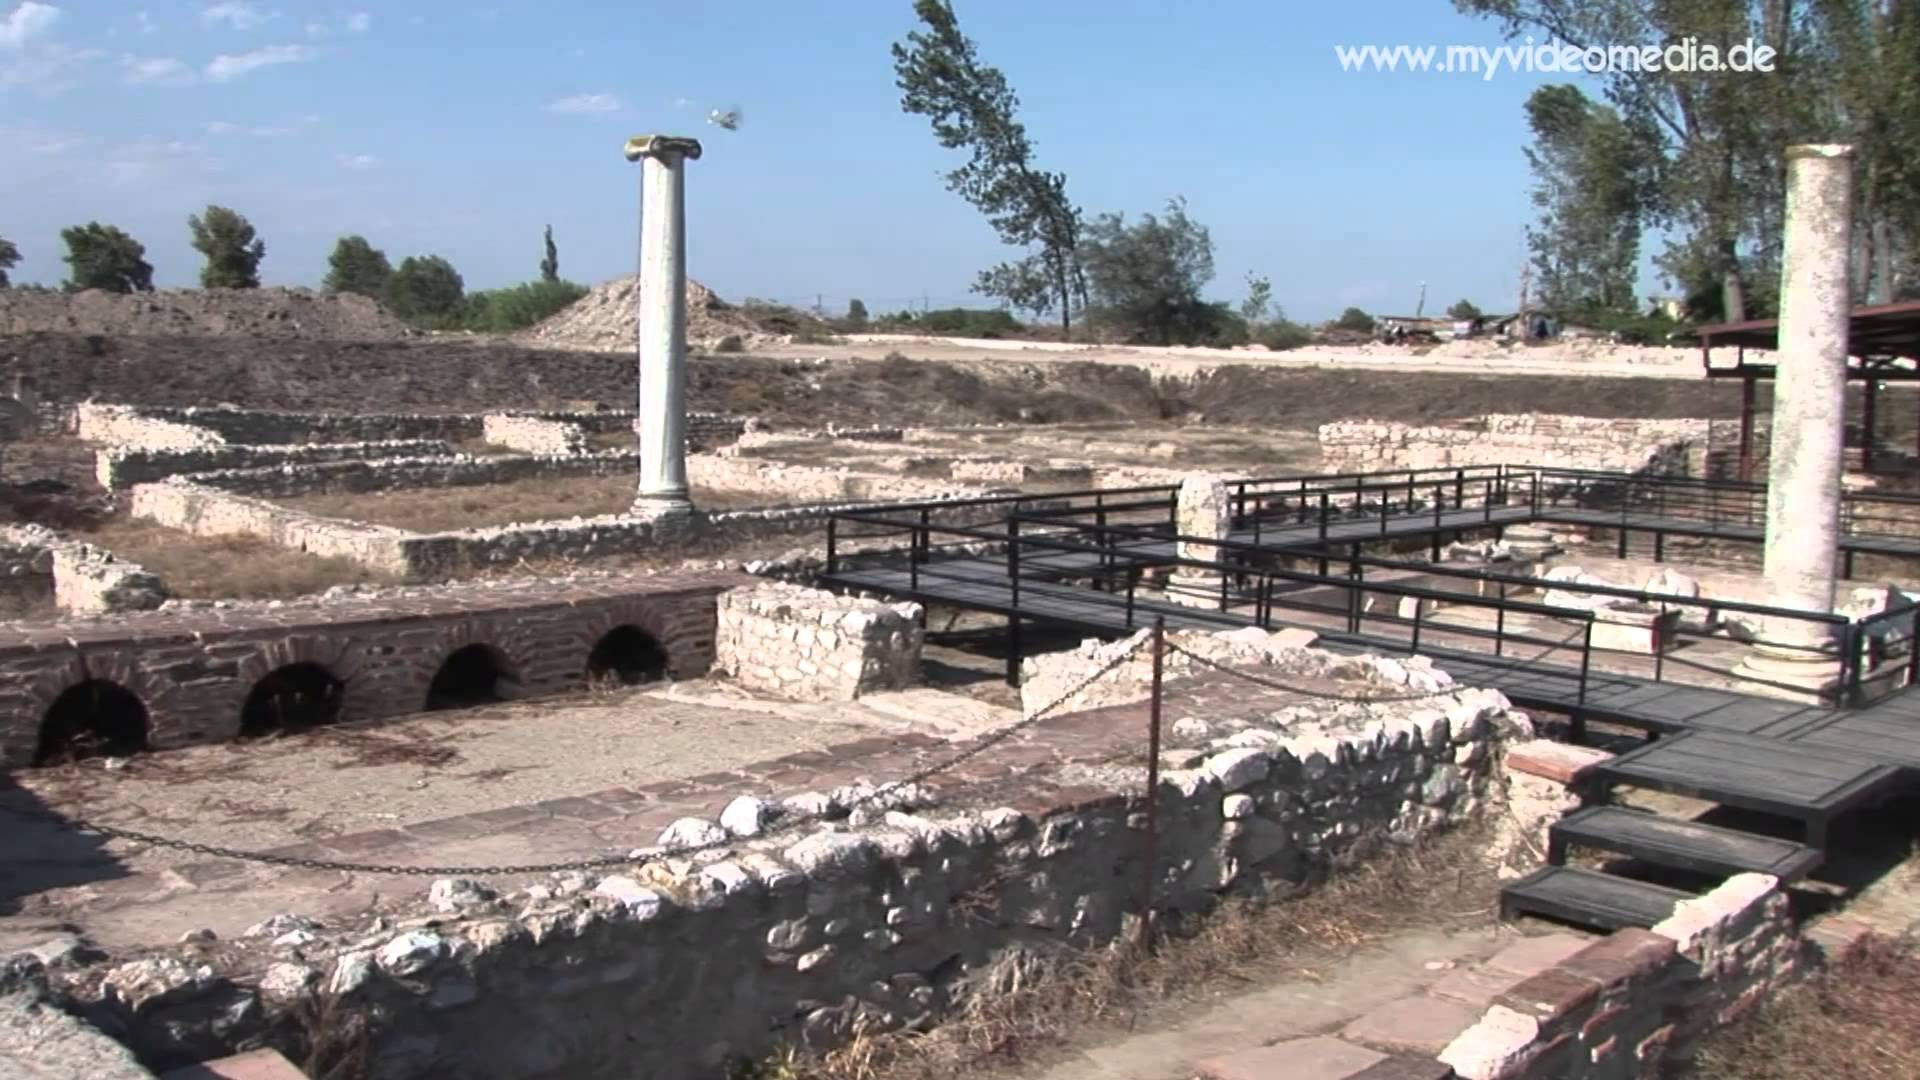 Dion Archaeological Site Thessaloniki and Central Macedonia, Dion, Macedonia - Greece HD Travel Channel - YouTube